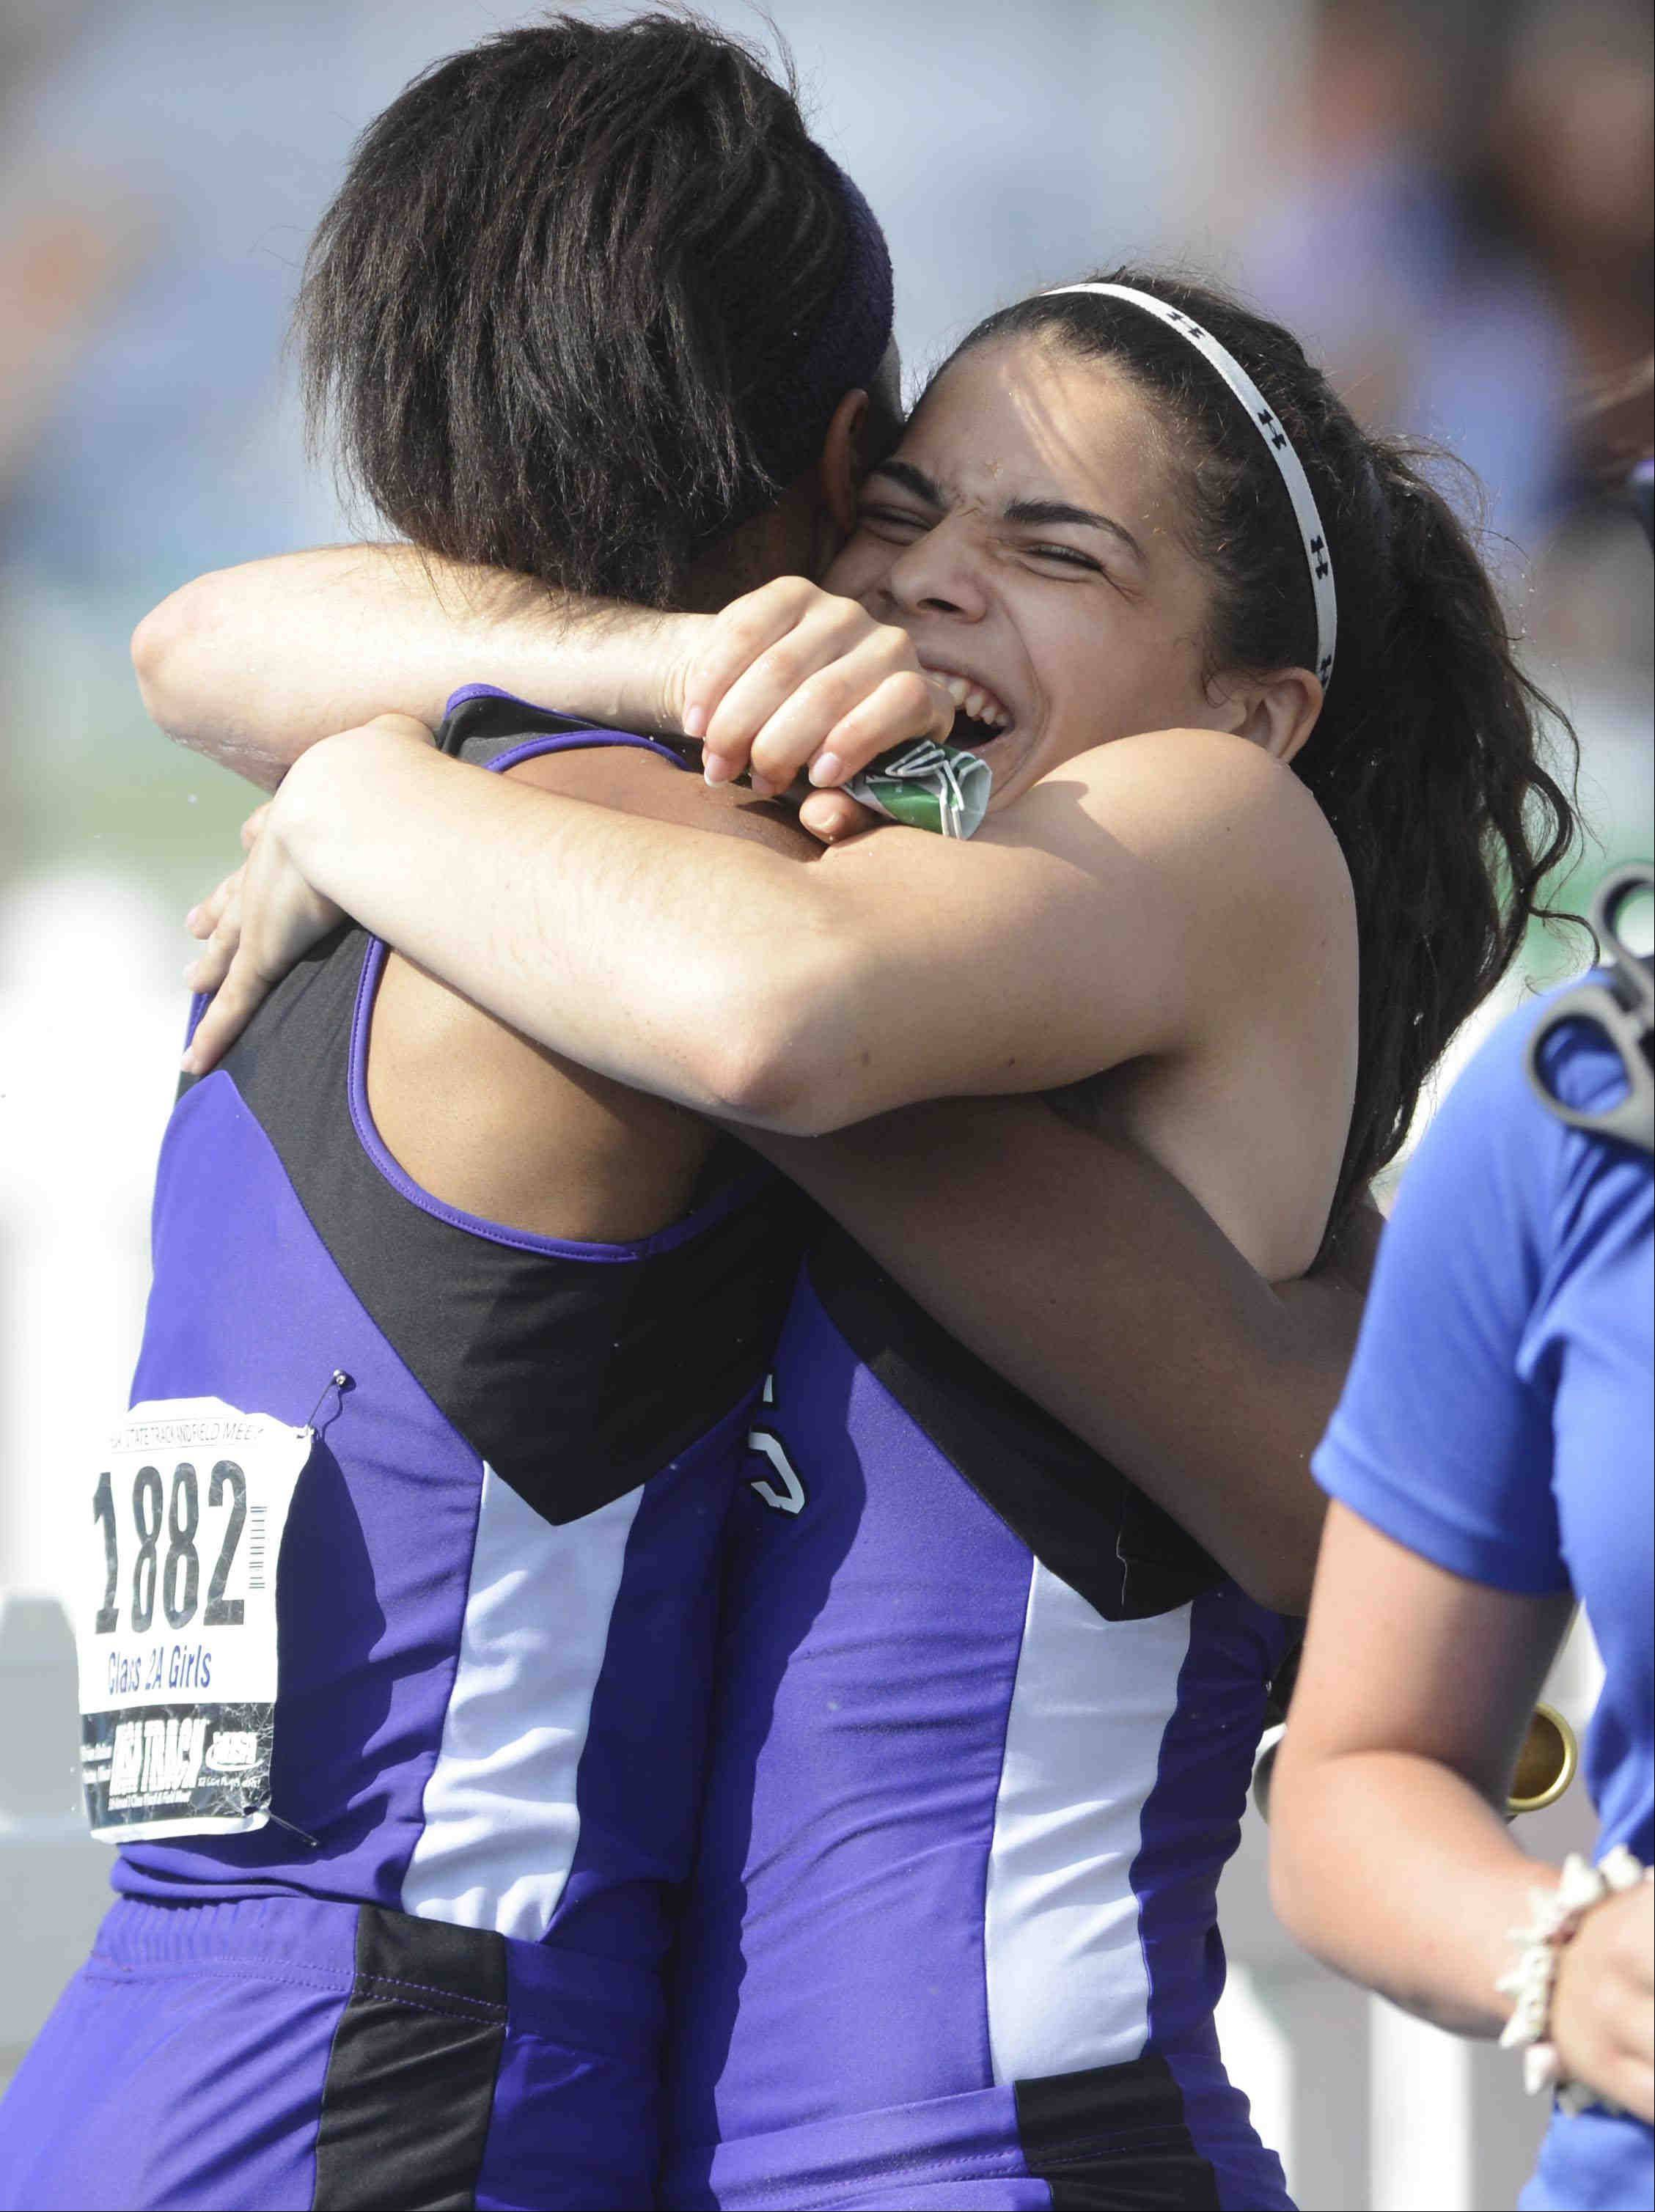 Hampshire's Elizabeth Pagan hugs teammate Ashley Fouch after their third place finish in the 1,600 meter relay Saturday at the Class 2A girls state track and field finals in Charleston.